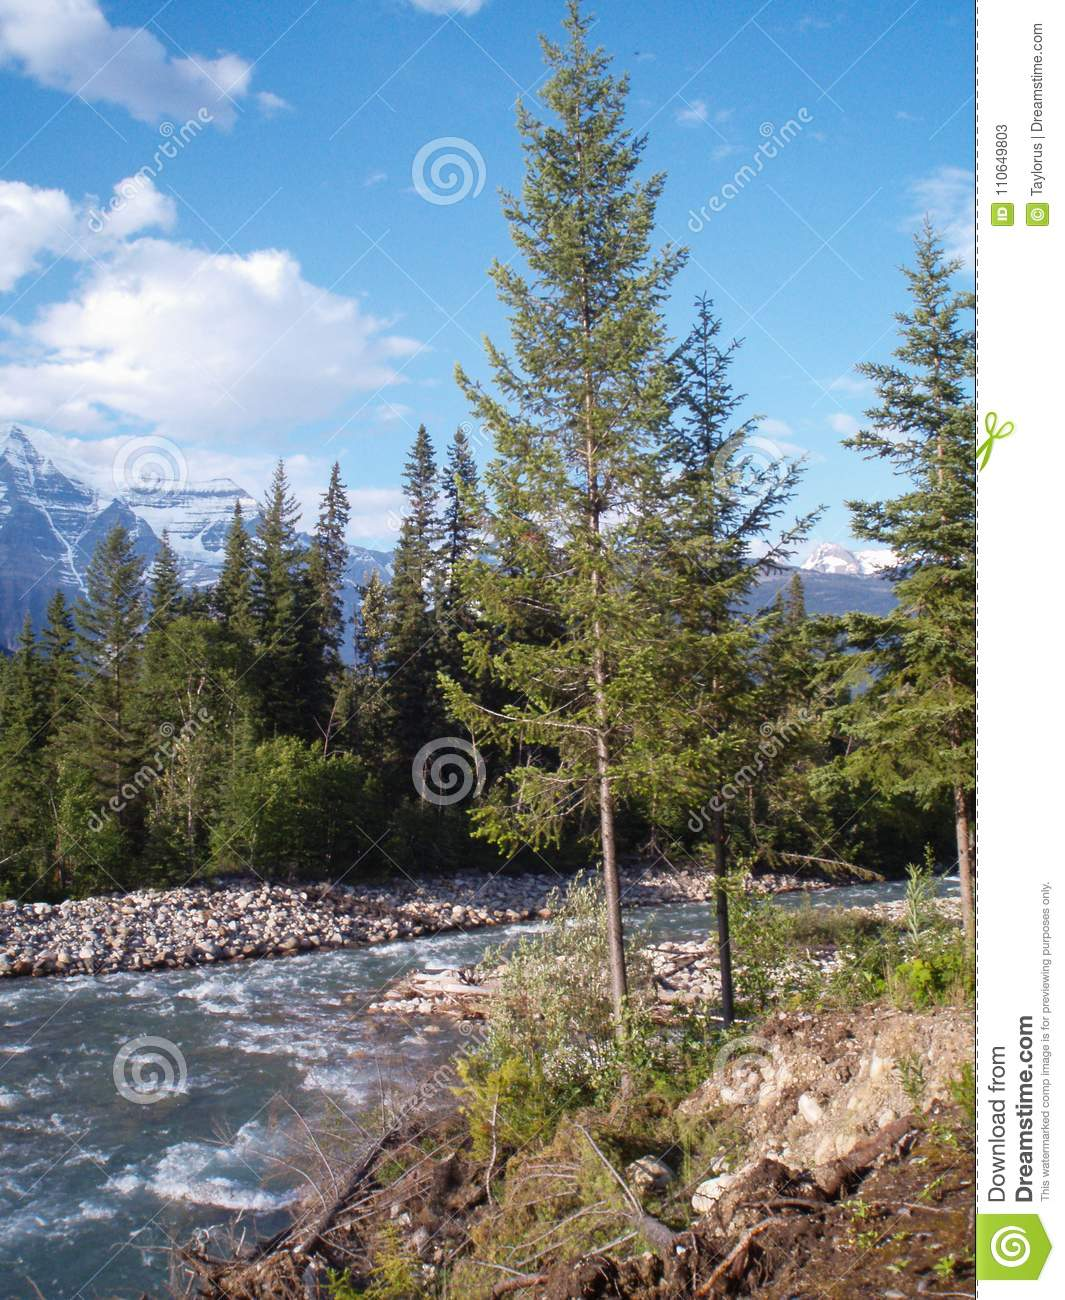 Vertically exposed scenic mountain view from the river bank in M